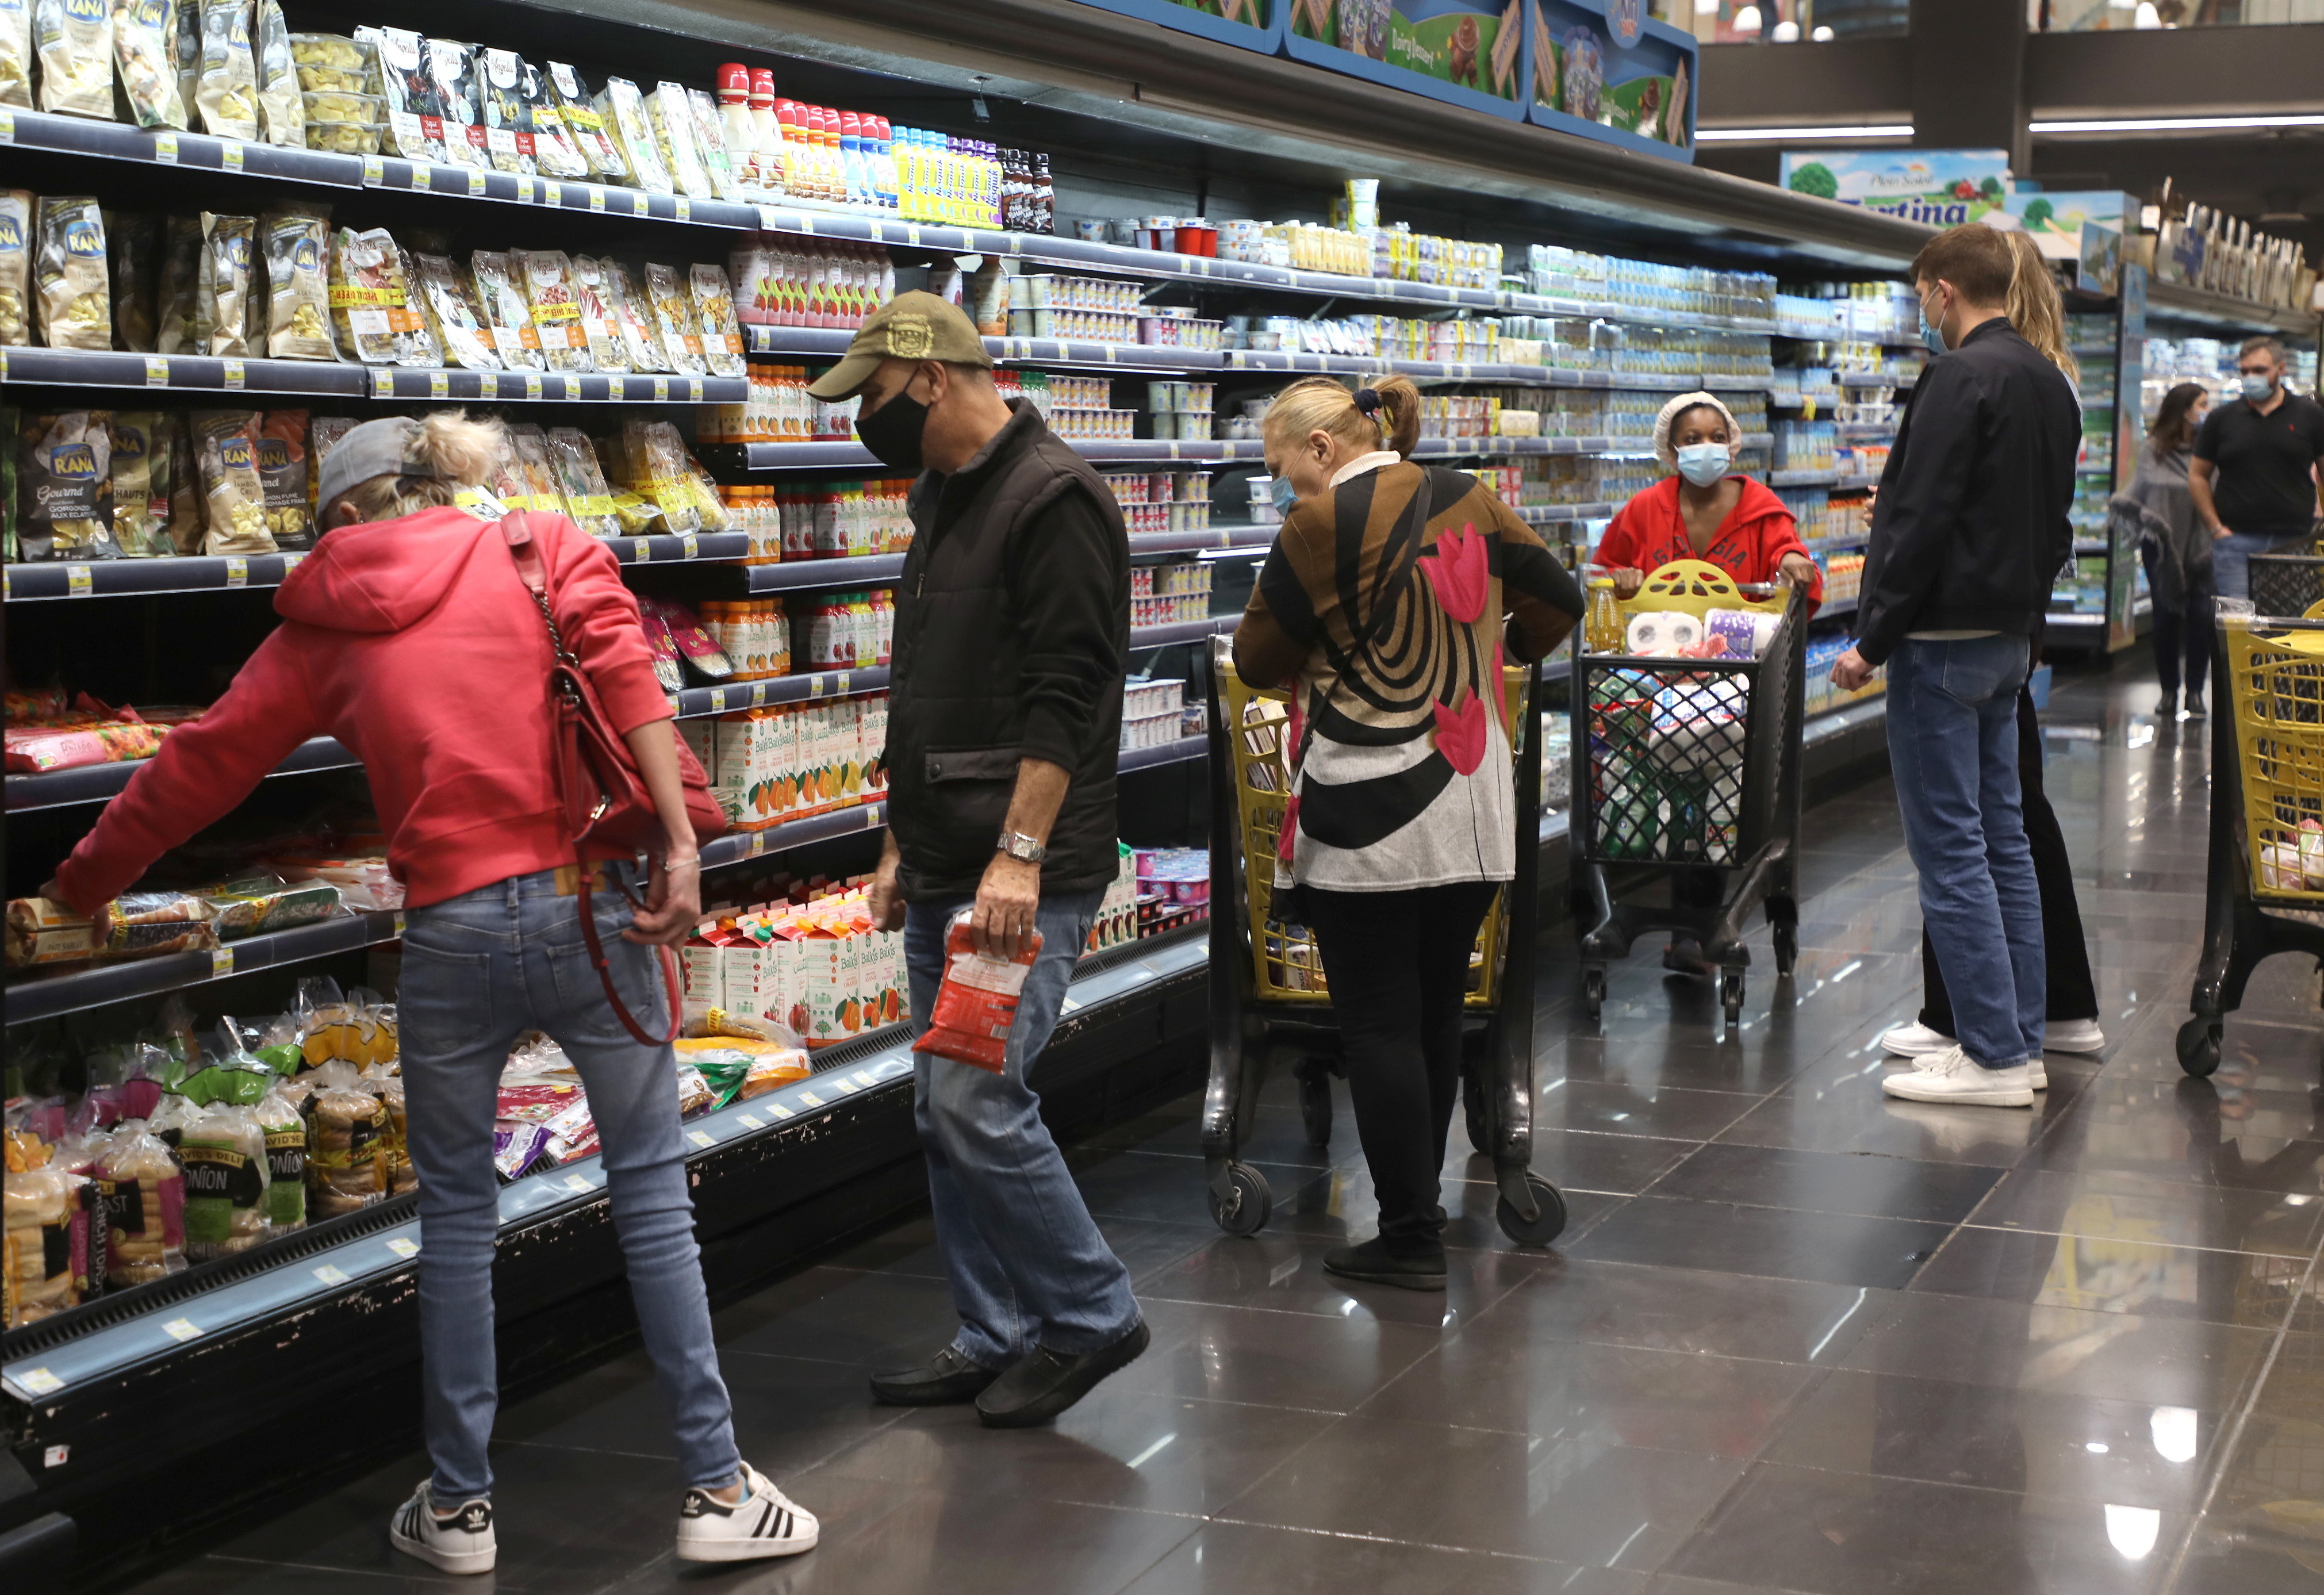 People shop at a supermarket ahead of a tightened lockdown and a 24-hour curfew to curb the spread the coronavirus disease (COVID-19) outbreak in Beirut, Lebanon, January 13, 2021. REUTERS/Mohamed Azakir - RC247L9TIC37